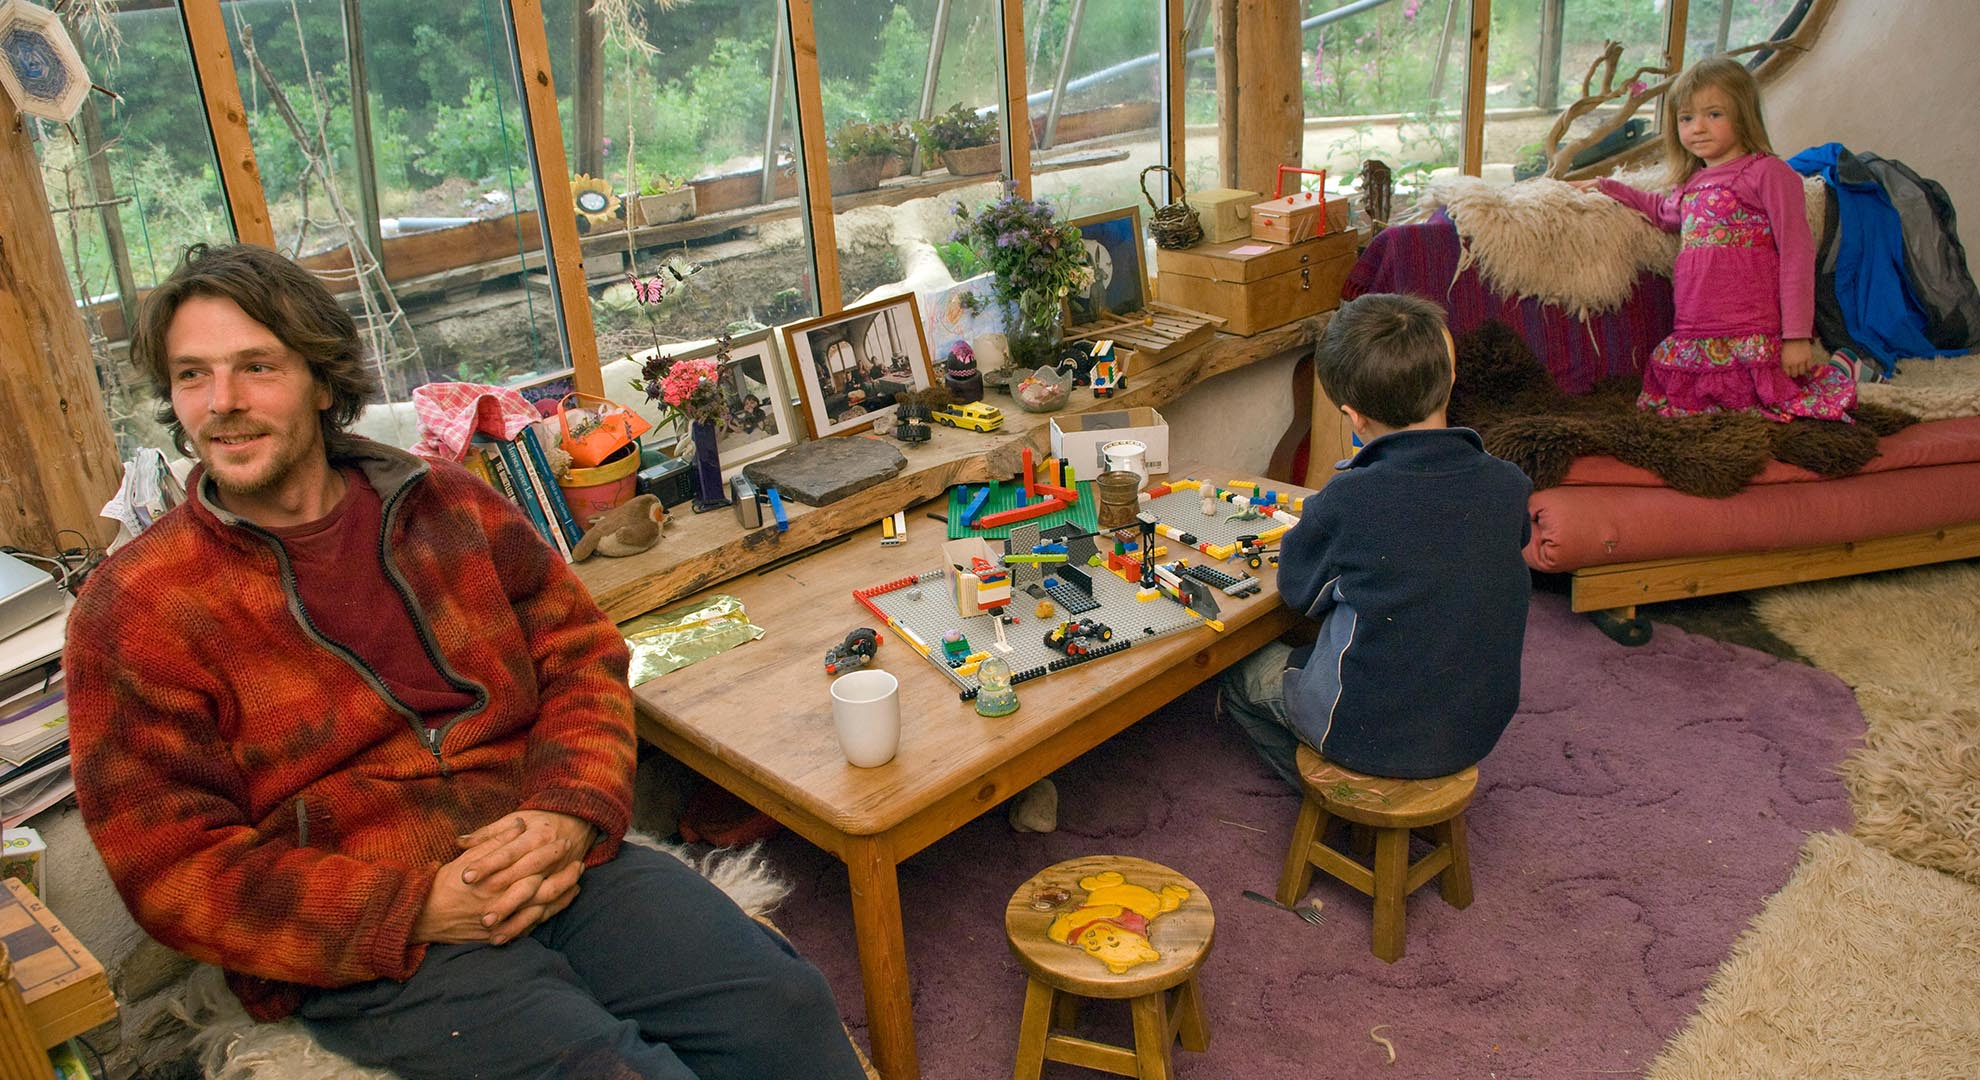 Family in an intentional community